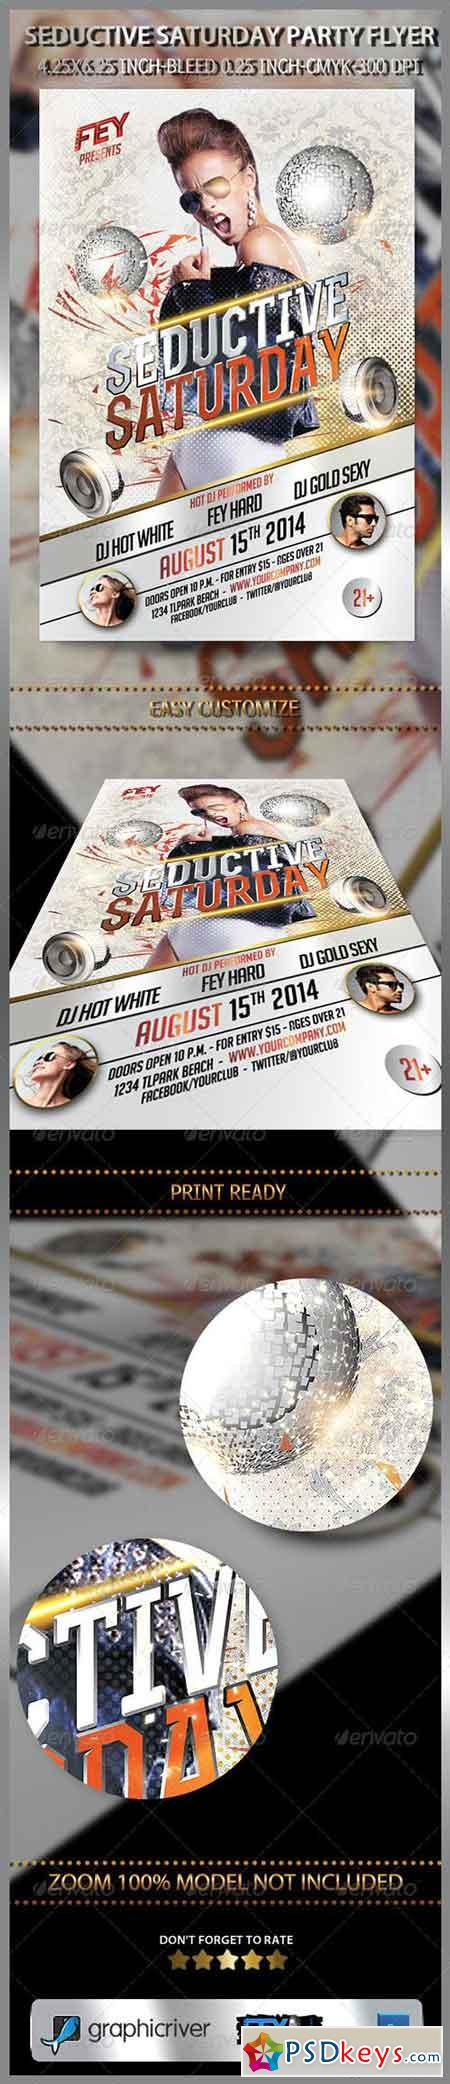 Seductive Saturday Party Flyer 7352257